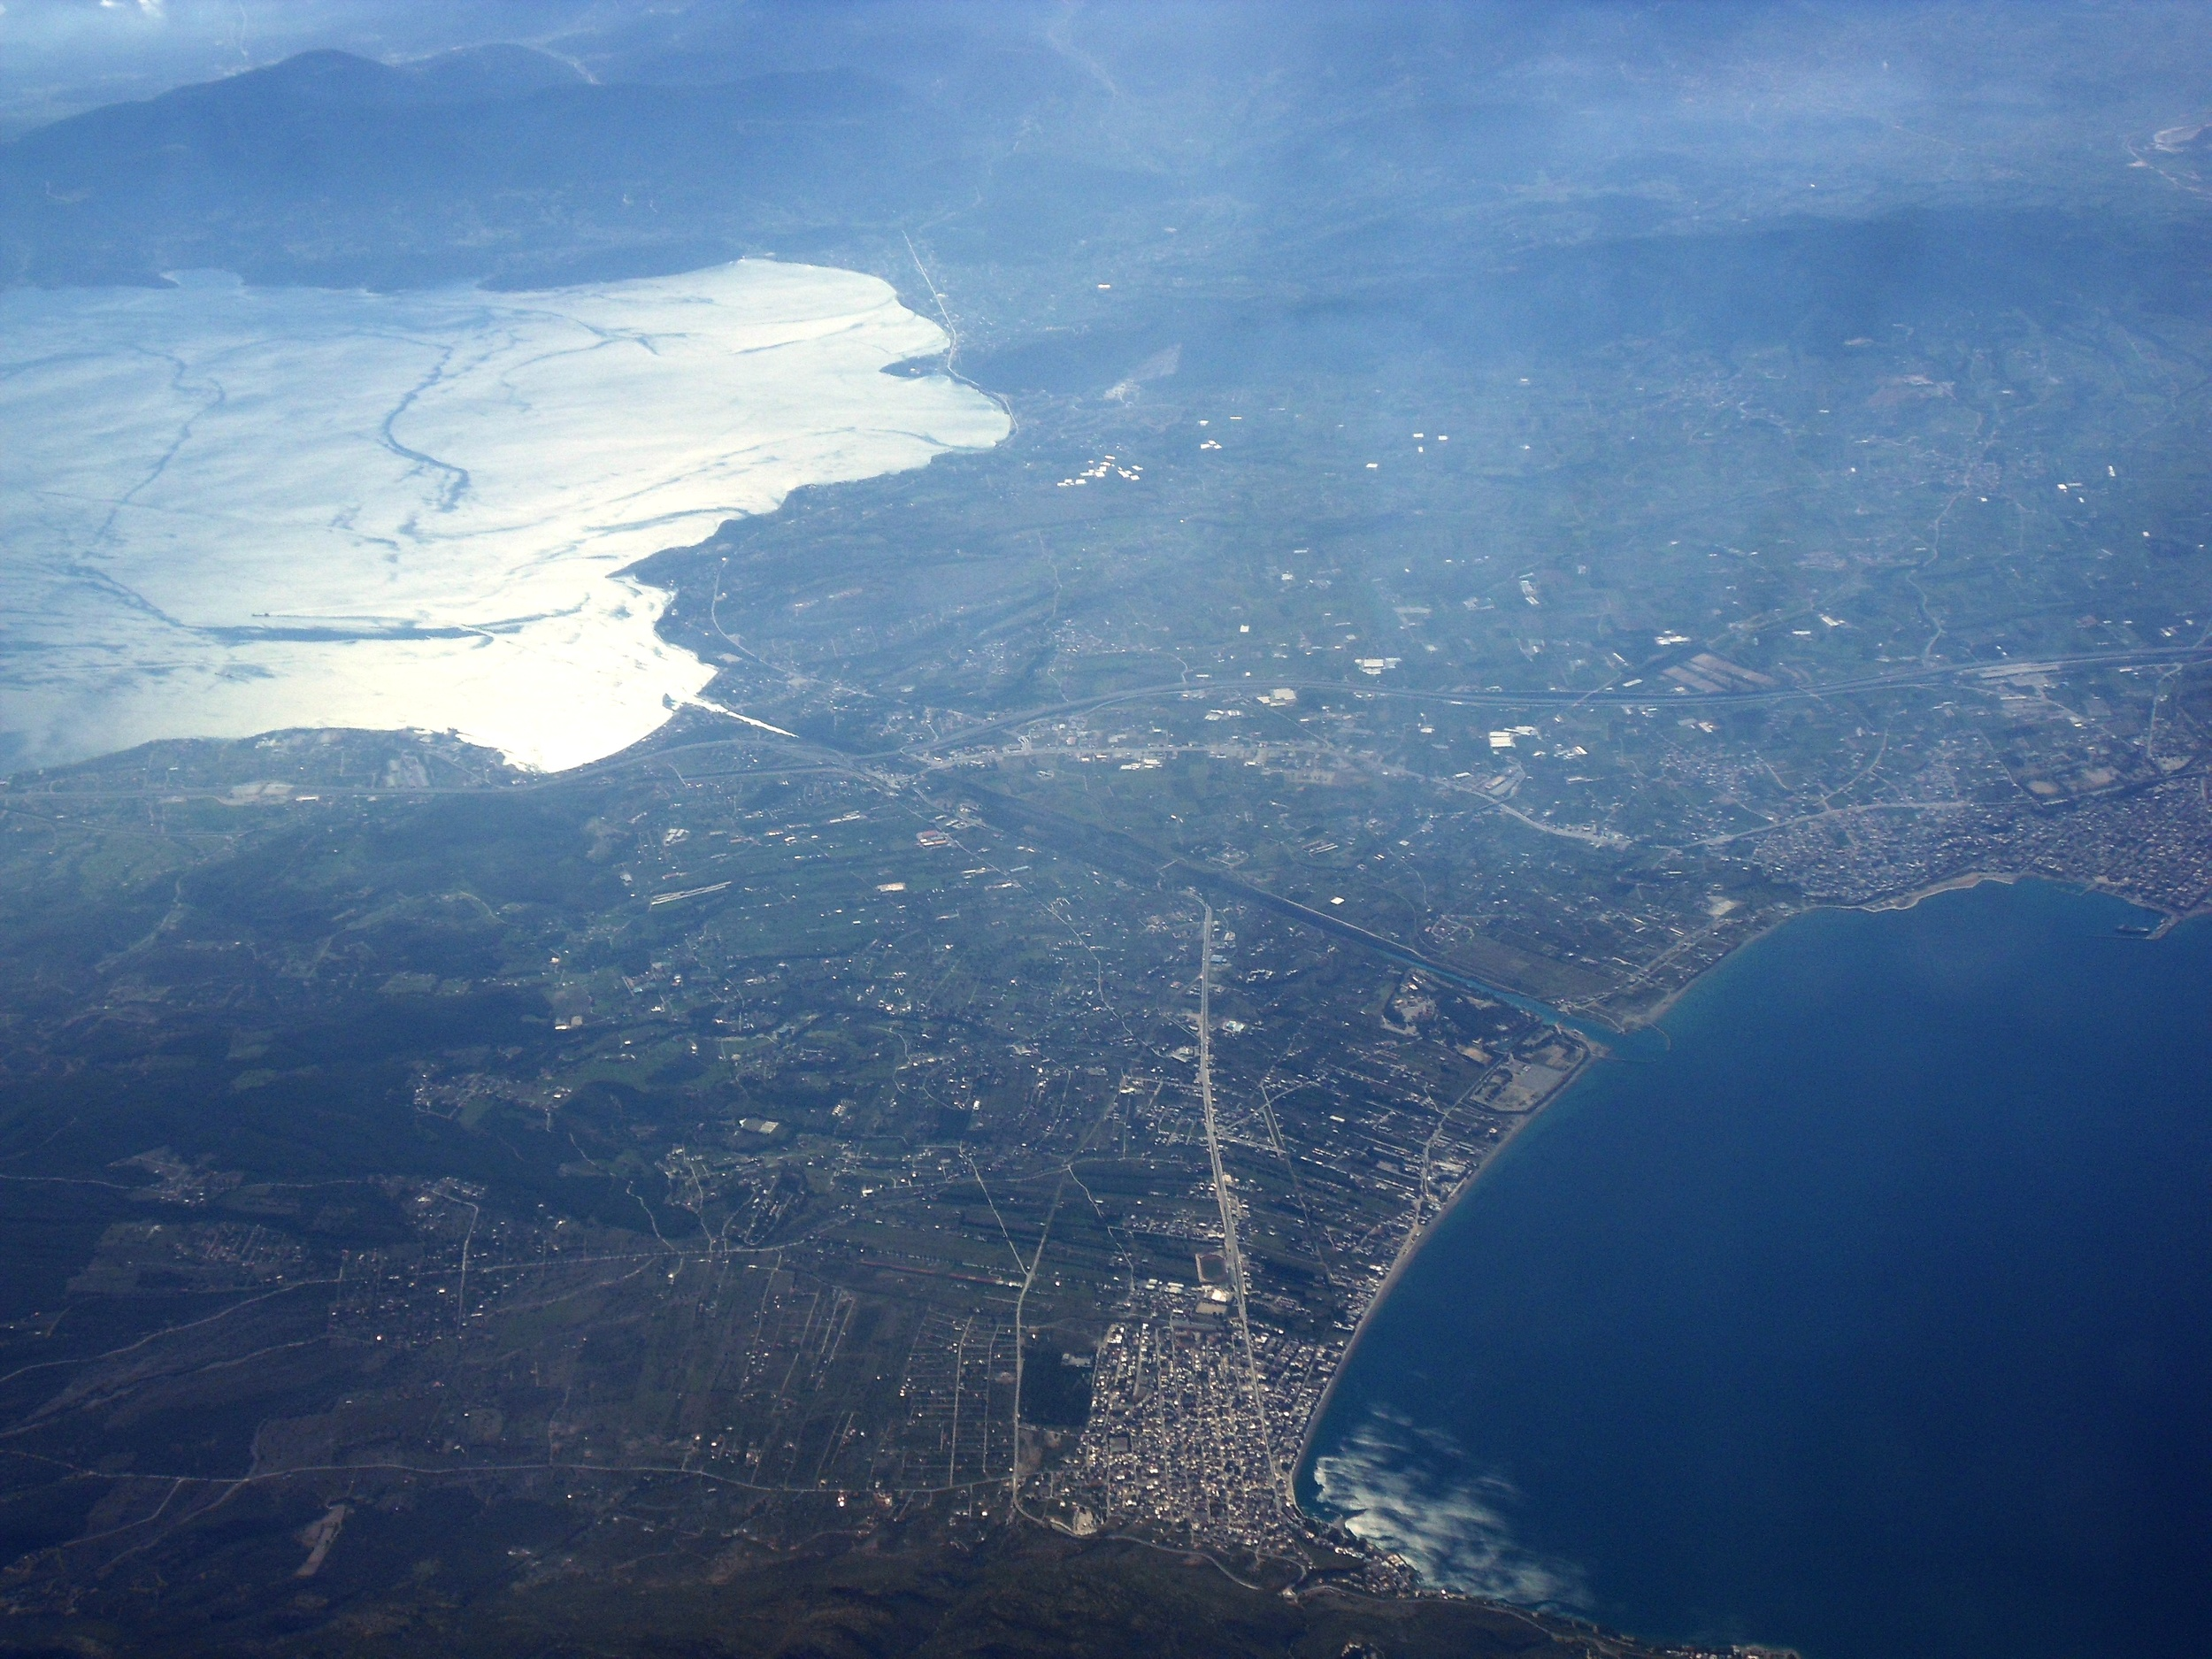 Another aerial shot of the canal and the Isthmus from further away. We entered from NW (Gulf of Corinth) and arrived SE (Saronic Gulf in the Aegean Sea).   Source:  Philos2000  via  Wikipedia